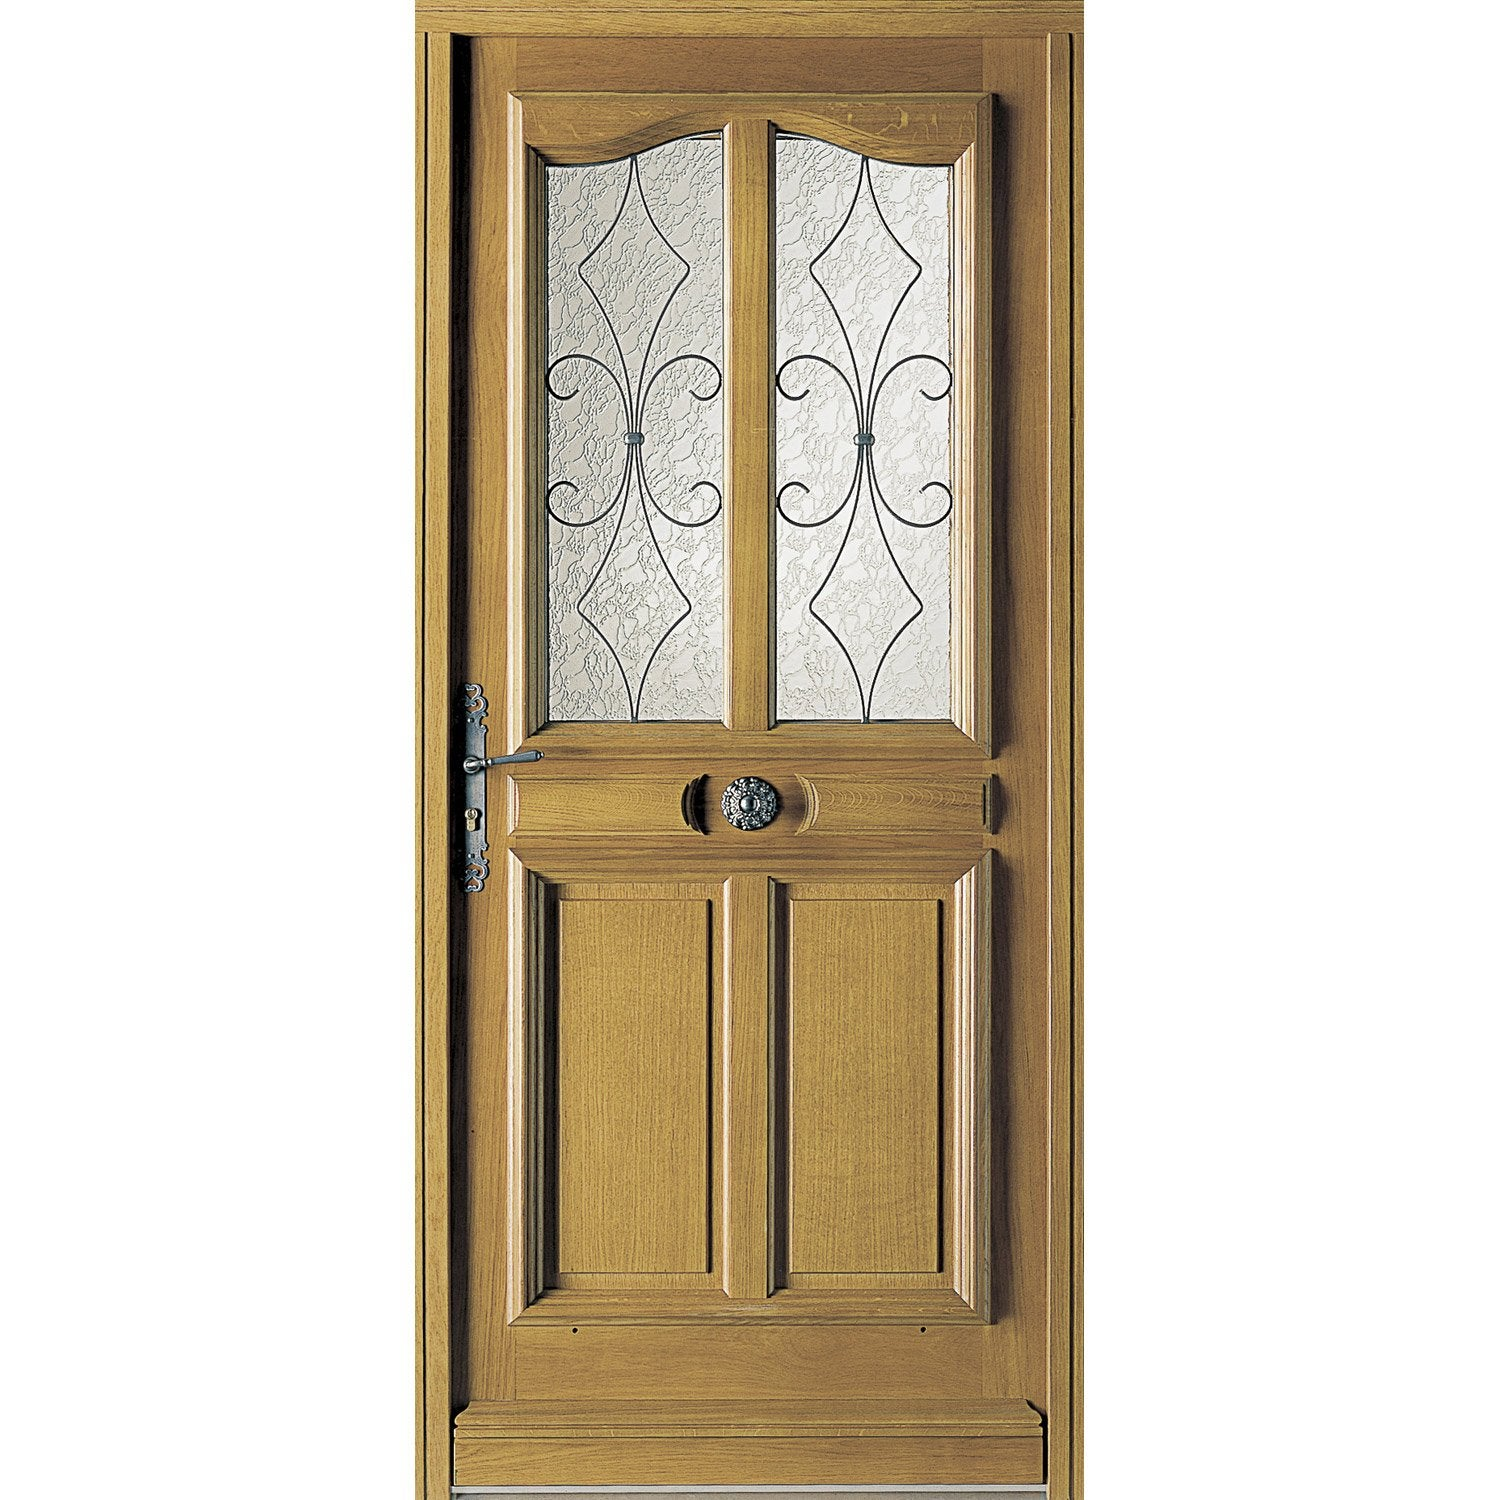 Porte d 39 entr e sur mesure en bois courchevel excellence for Porte 63cm leroy merlin